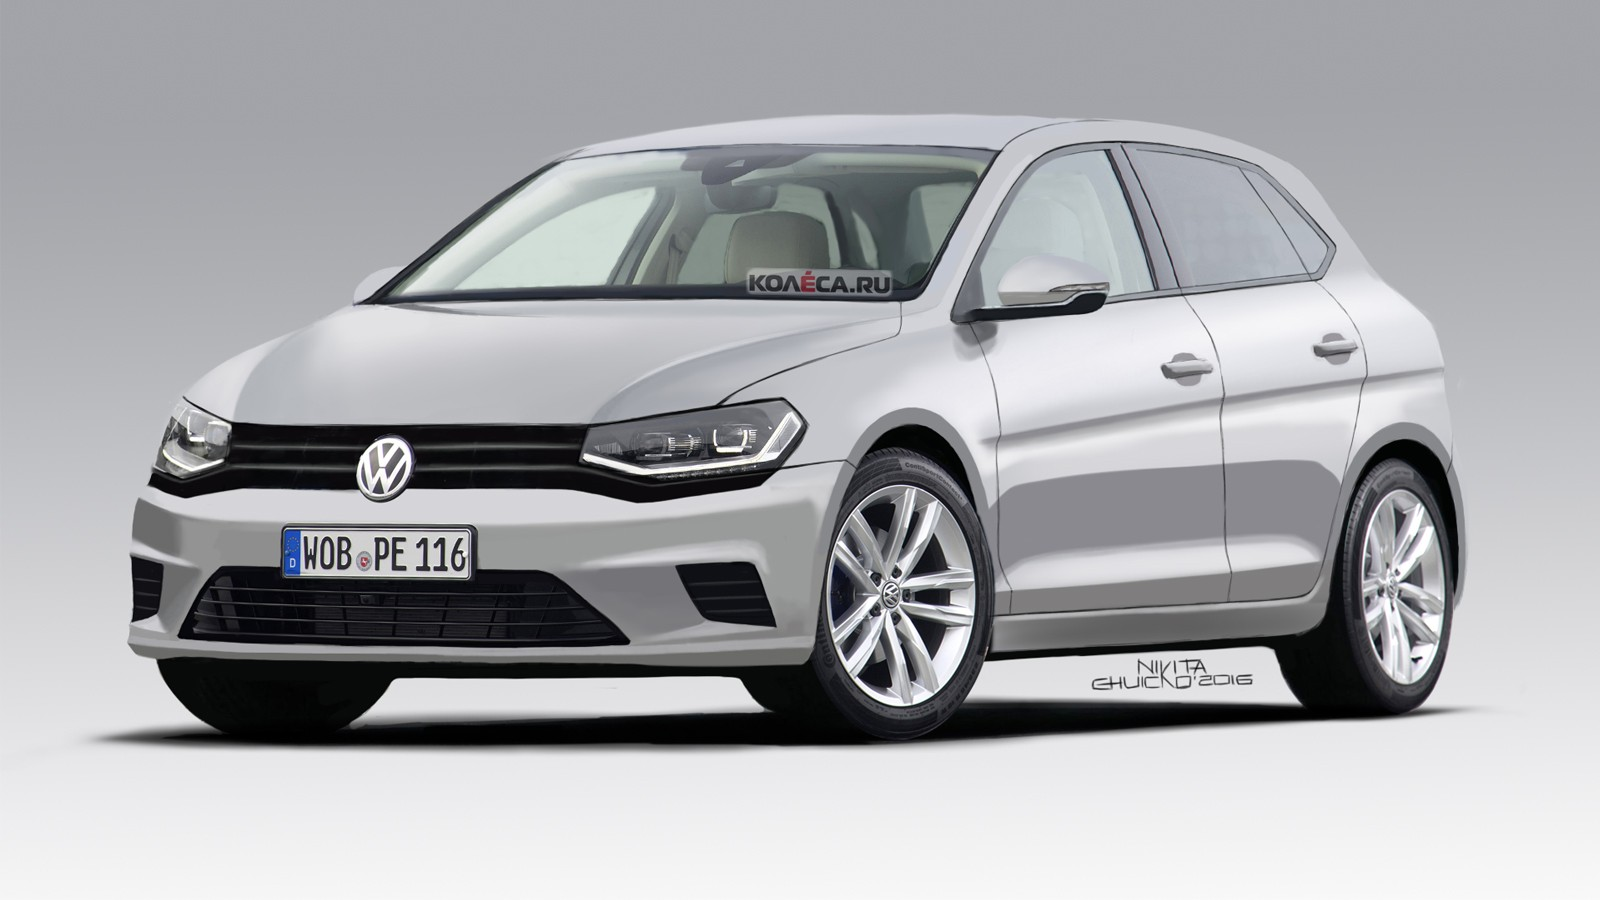 VW Polo front